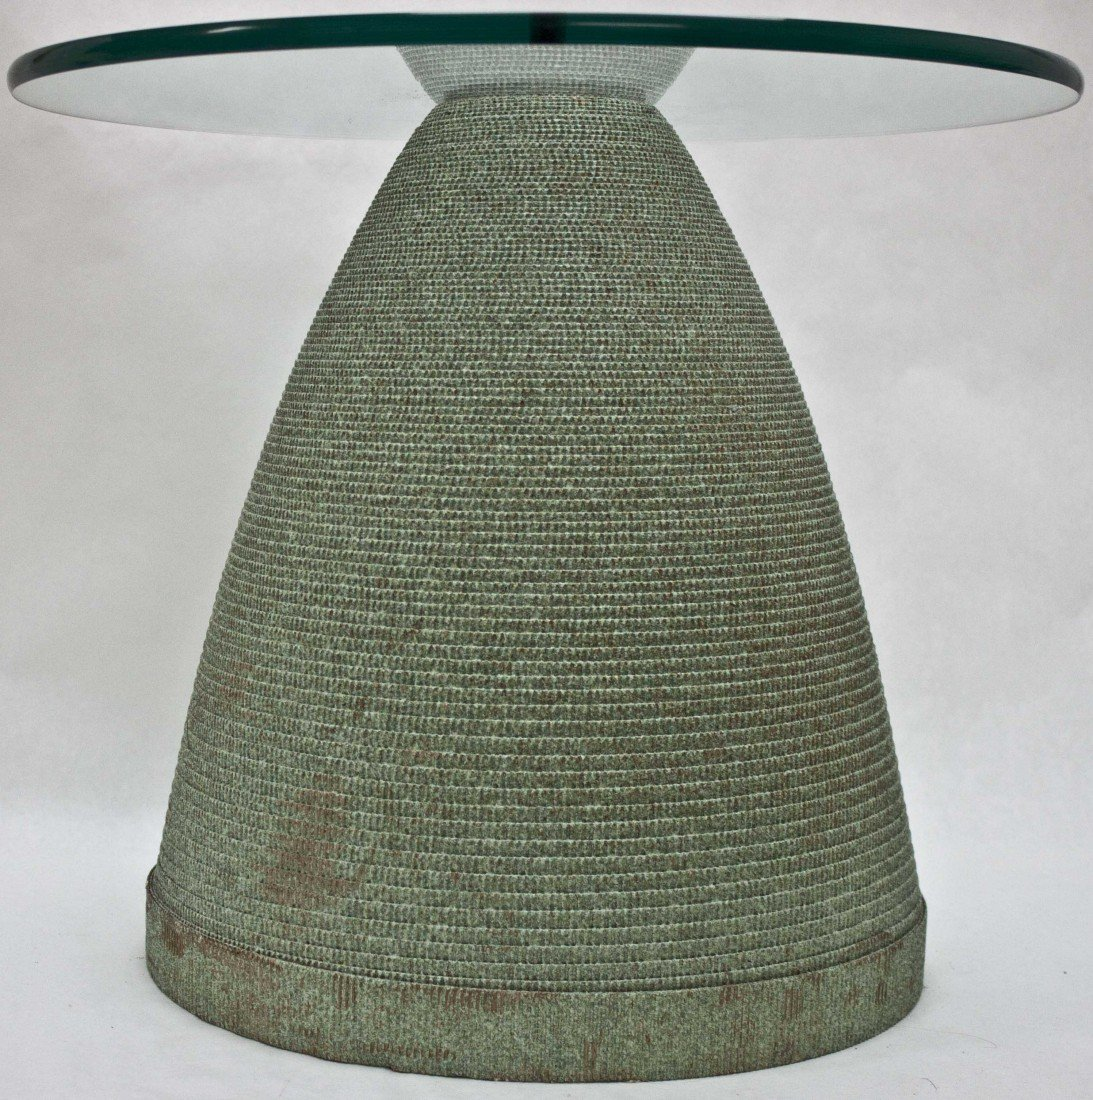 37A: Flute Glass and Corrugated Paper End Table